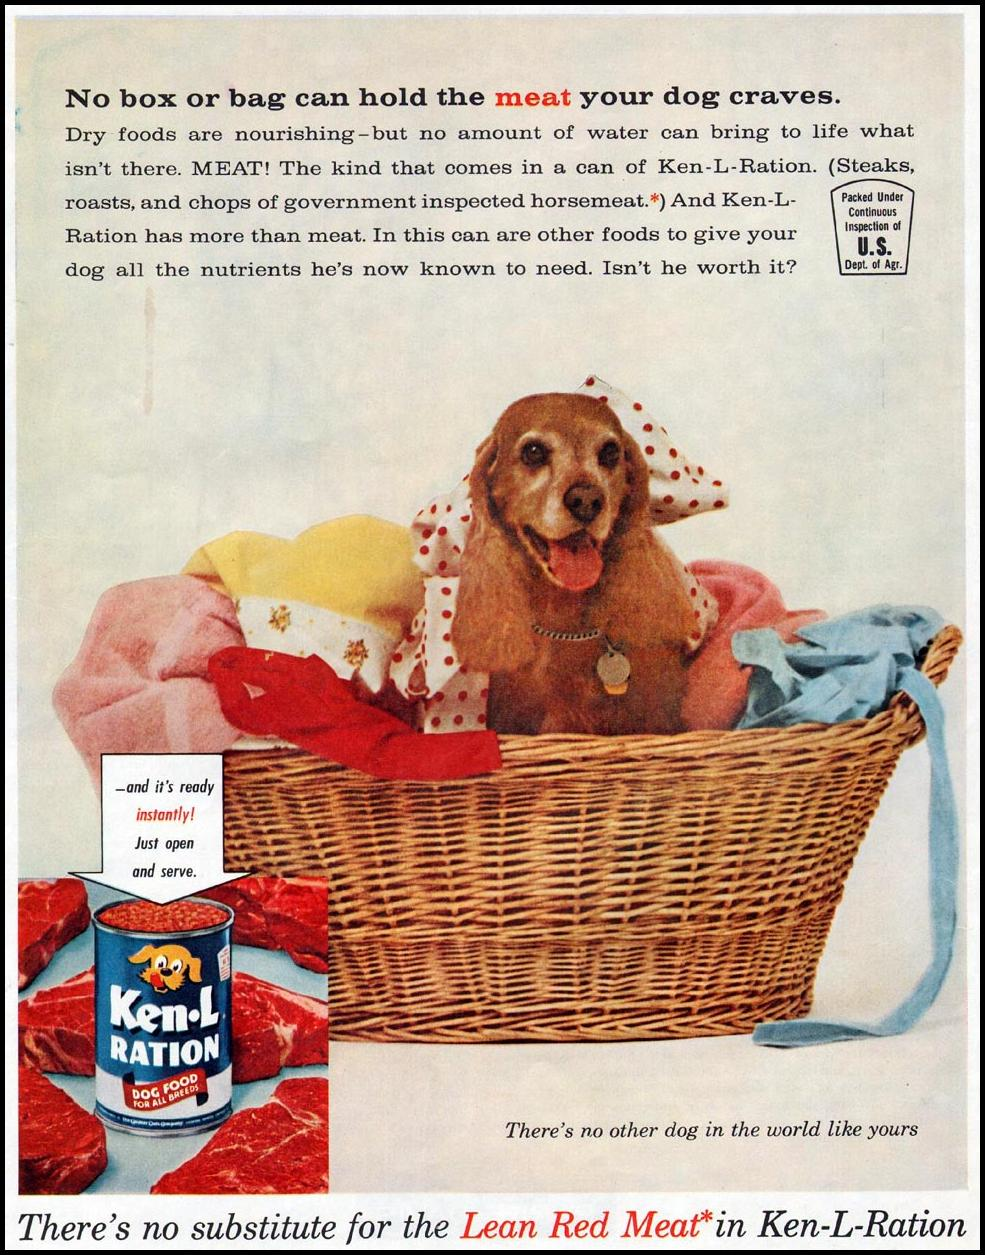 KEN-L-RATION DOG FOOD LADIES' HOME JOURNAL 06/01/1961 p. 22